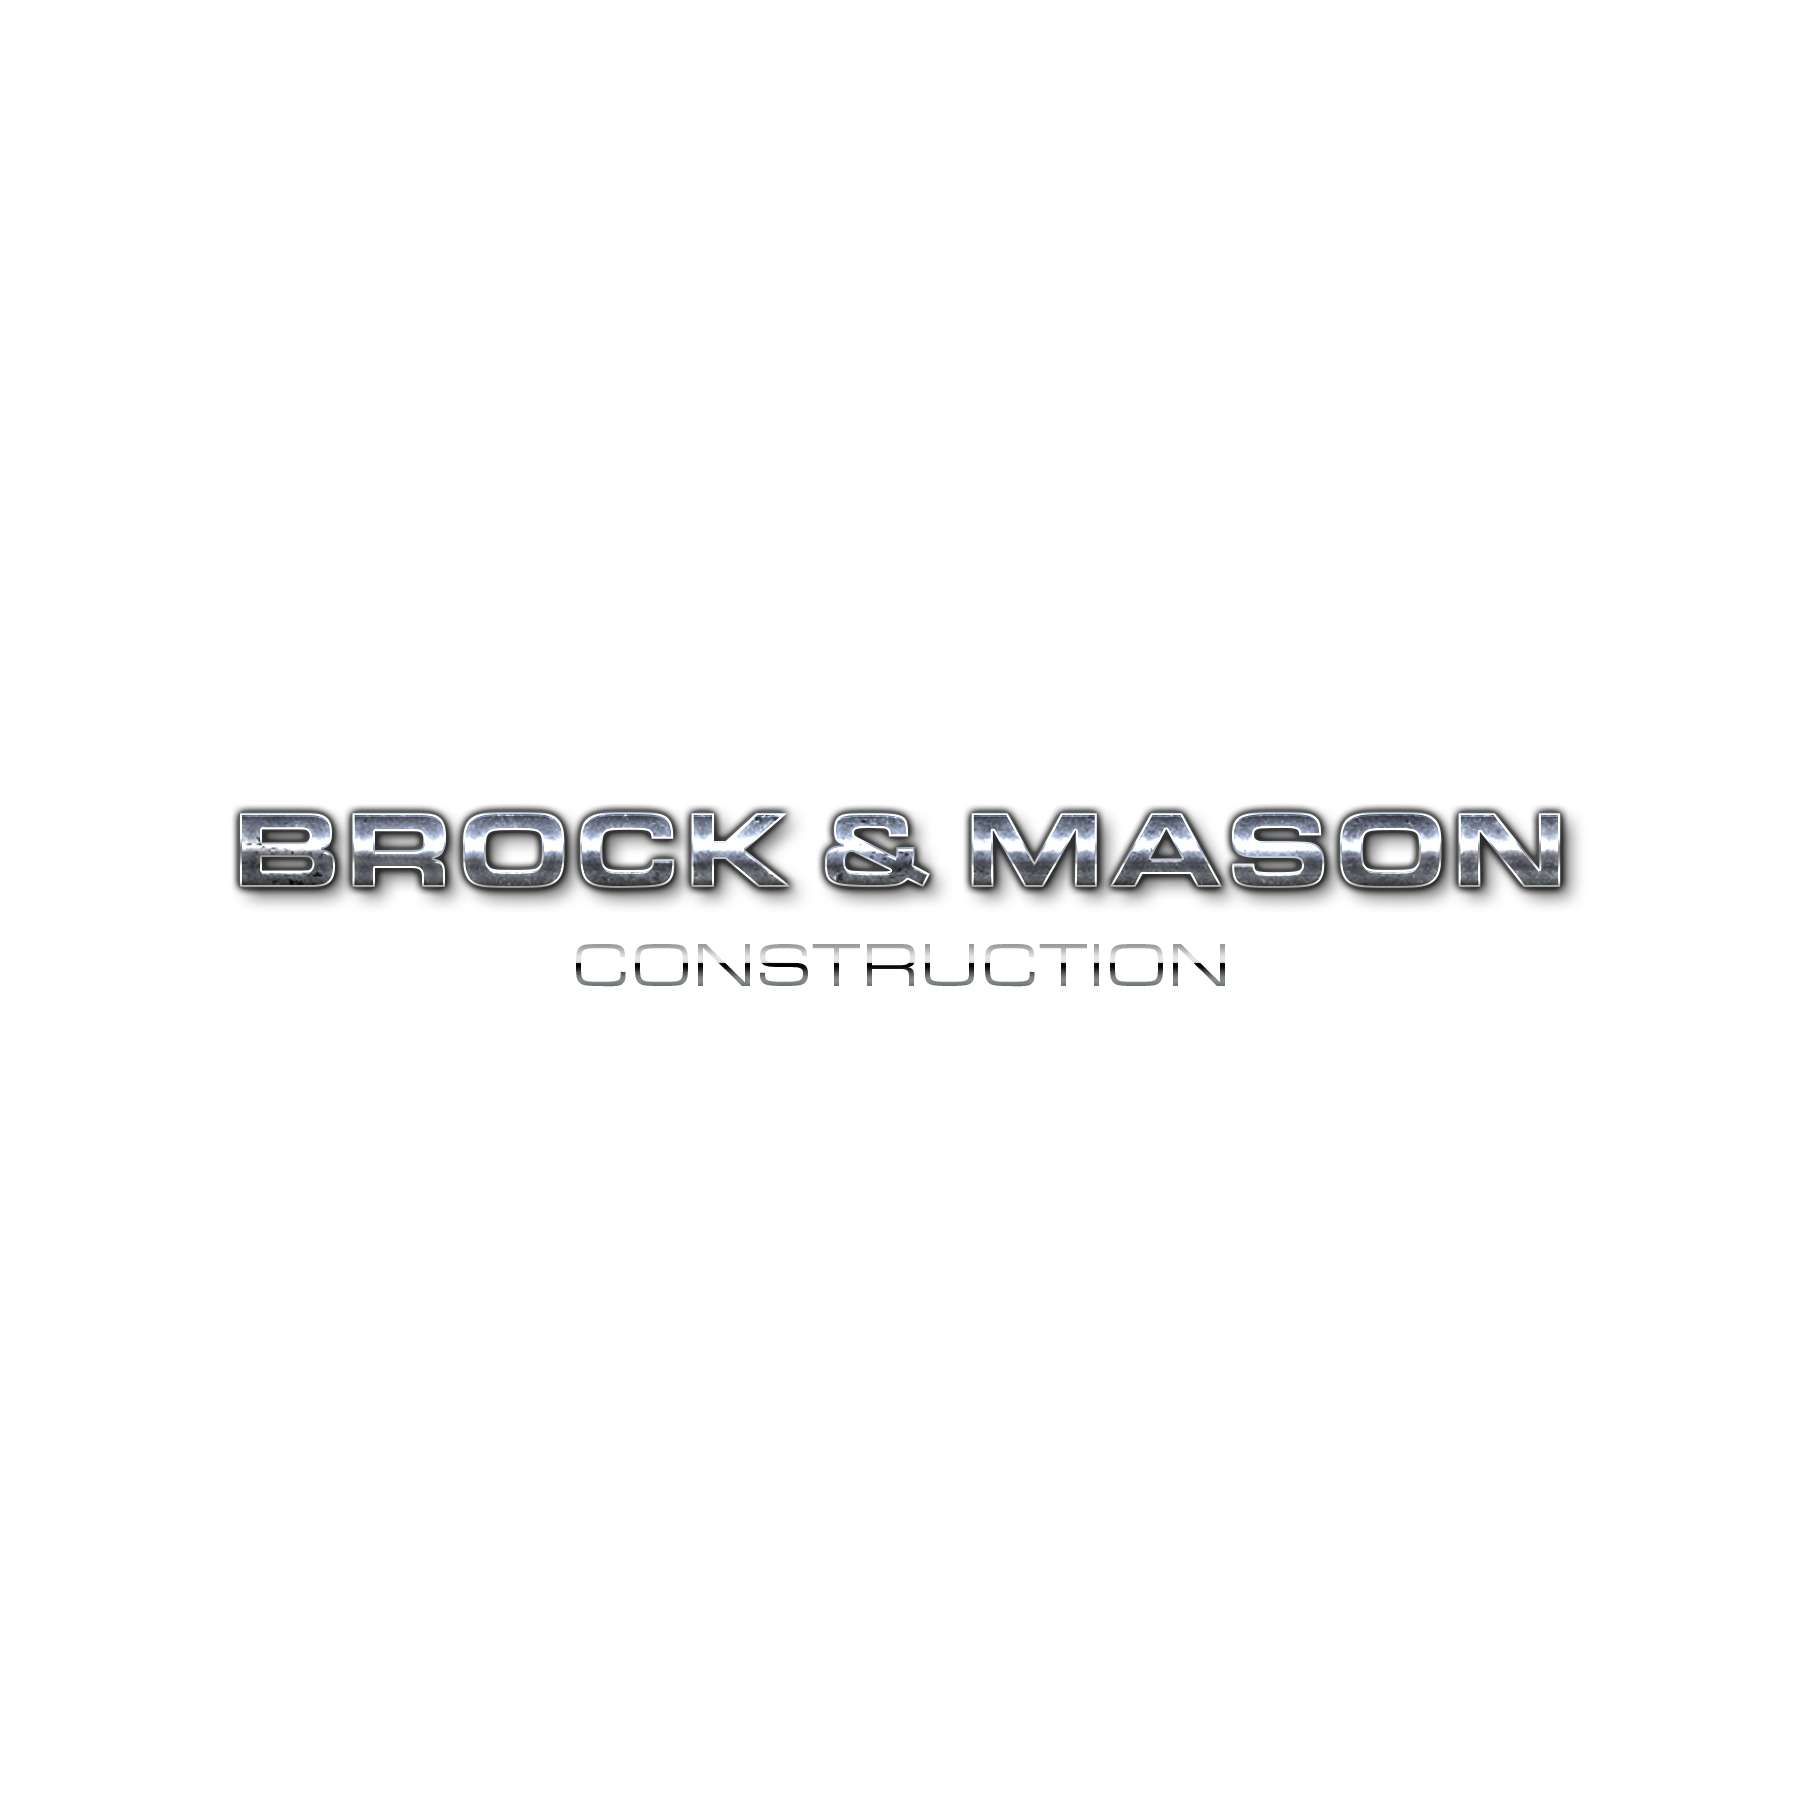 Euro Block Font Option Budget Logo Express Metallic Grunge Brock and Mason Construction white by Brand G Creative 07 OCTOBER 2017.jpg